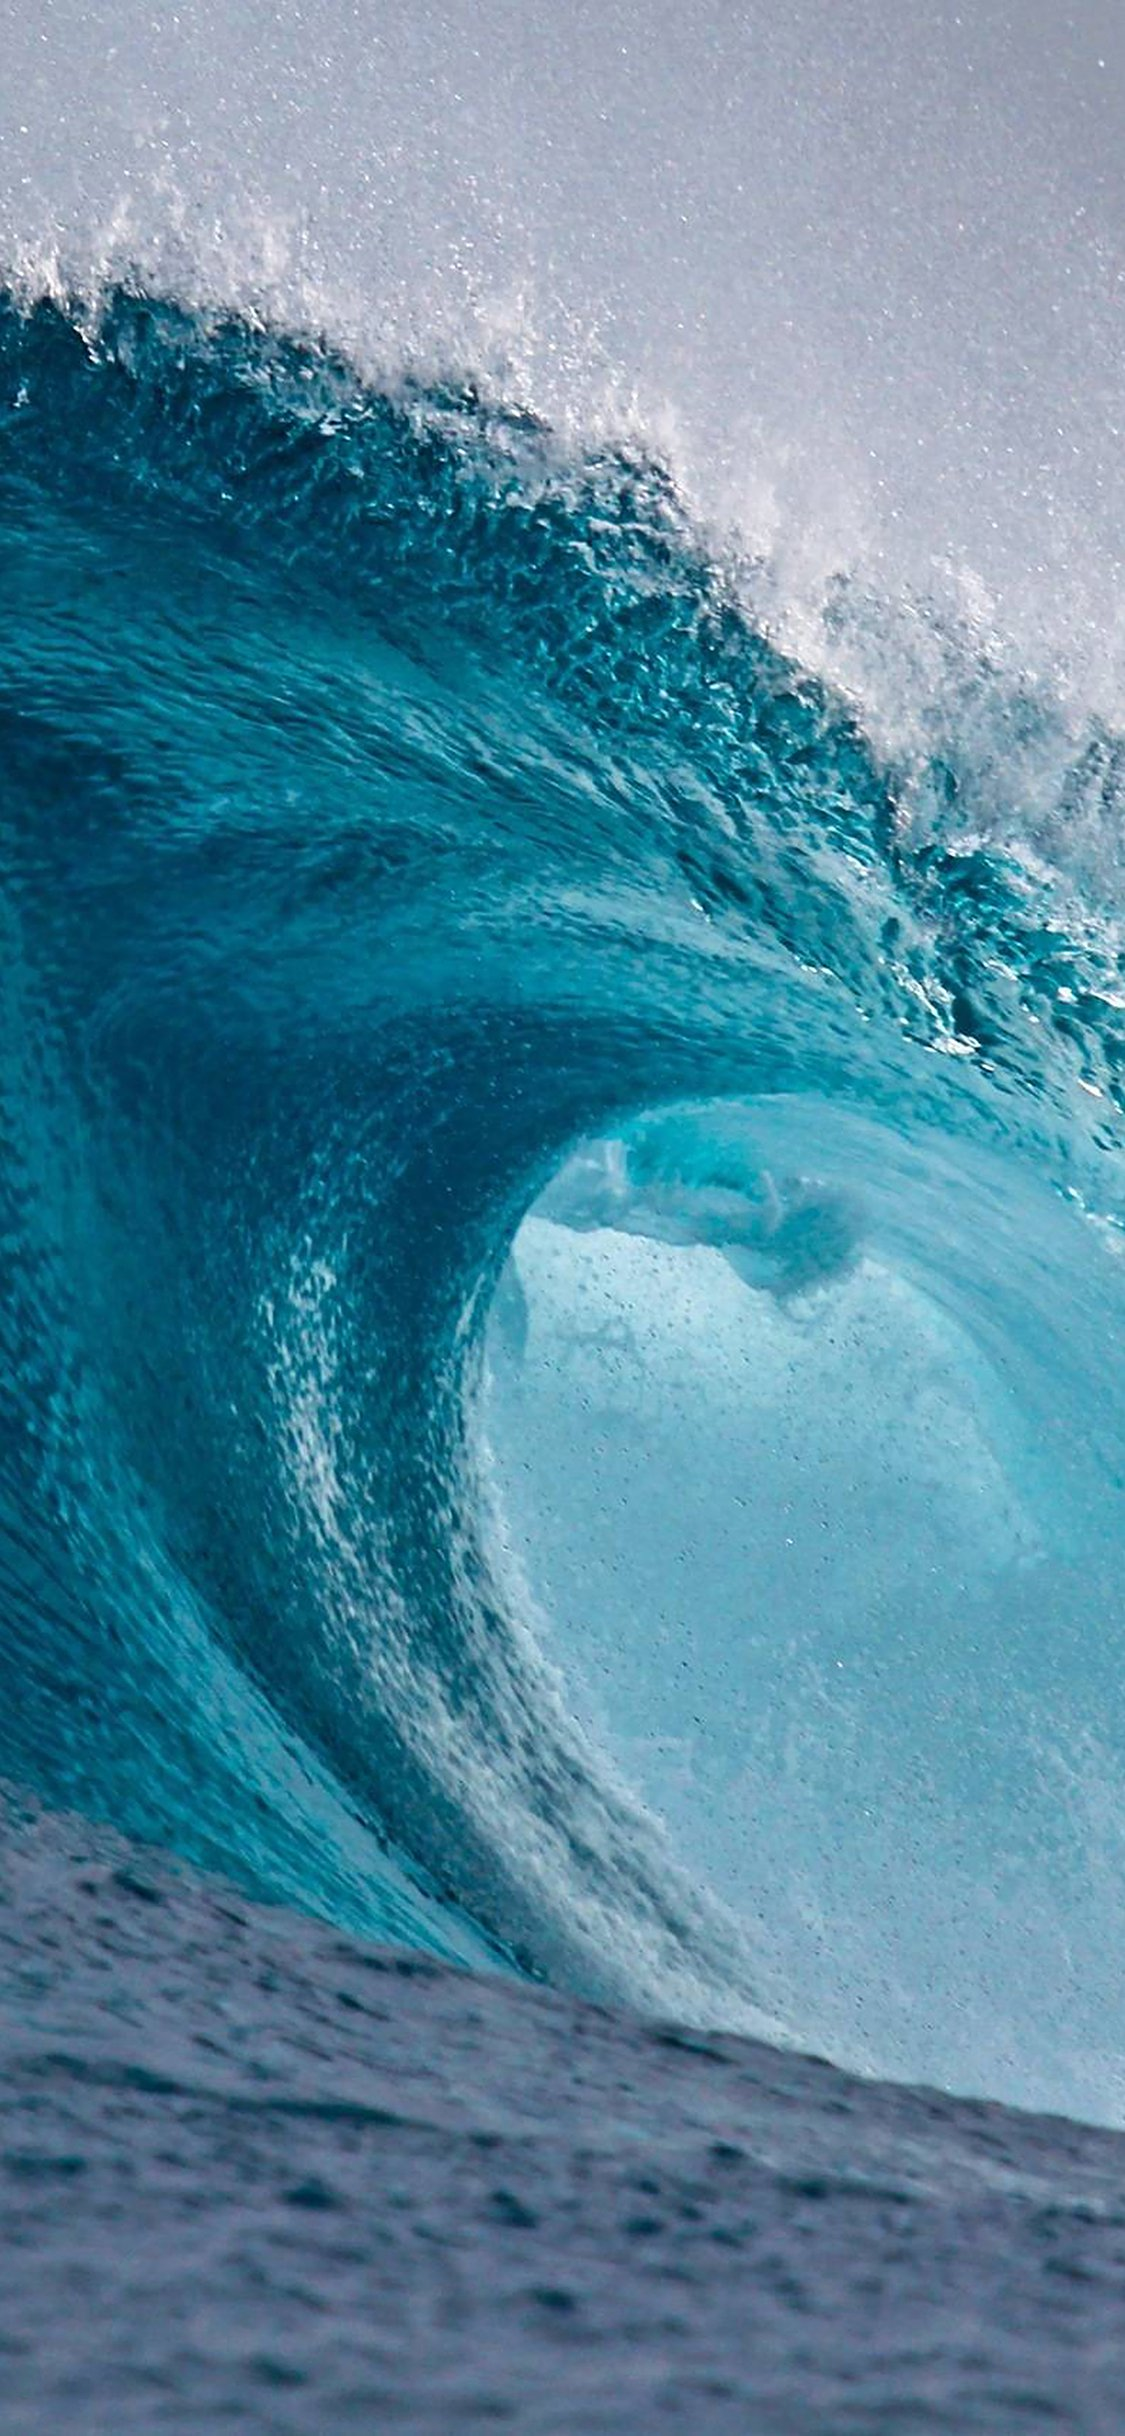 Water wallpapers for iphone ipad and desktop - Wave pics wallpaper ...